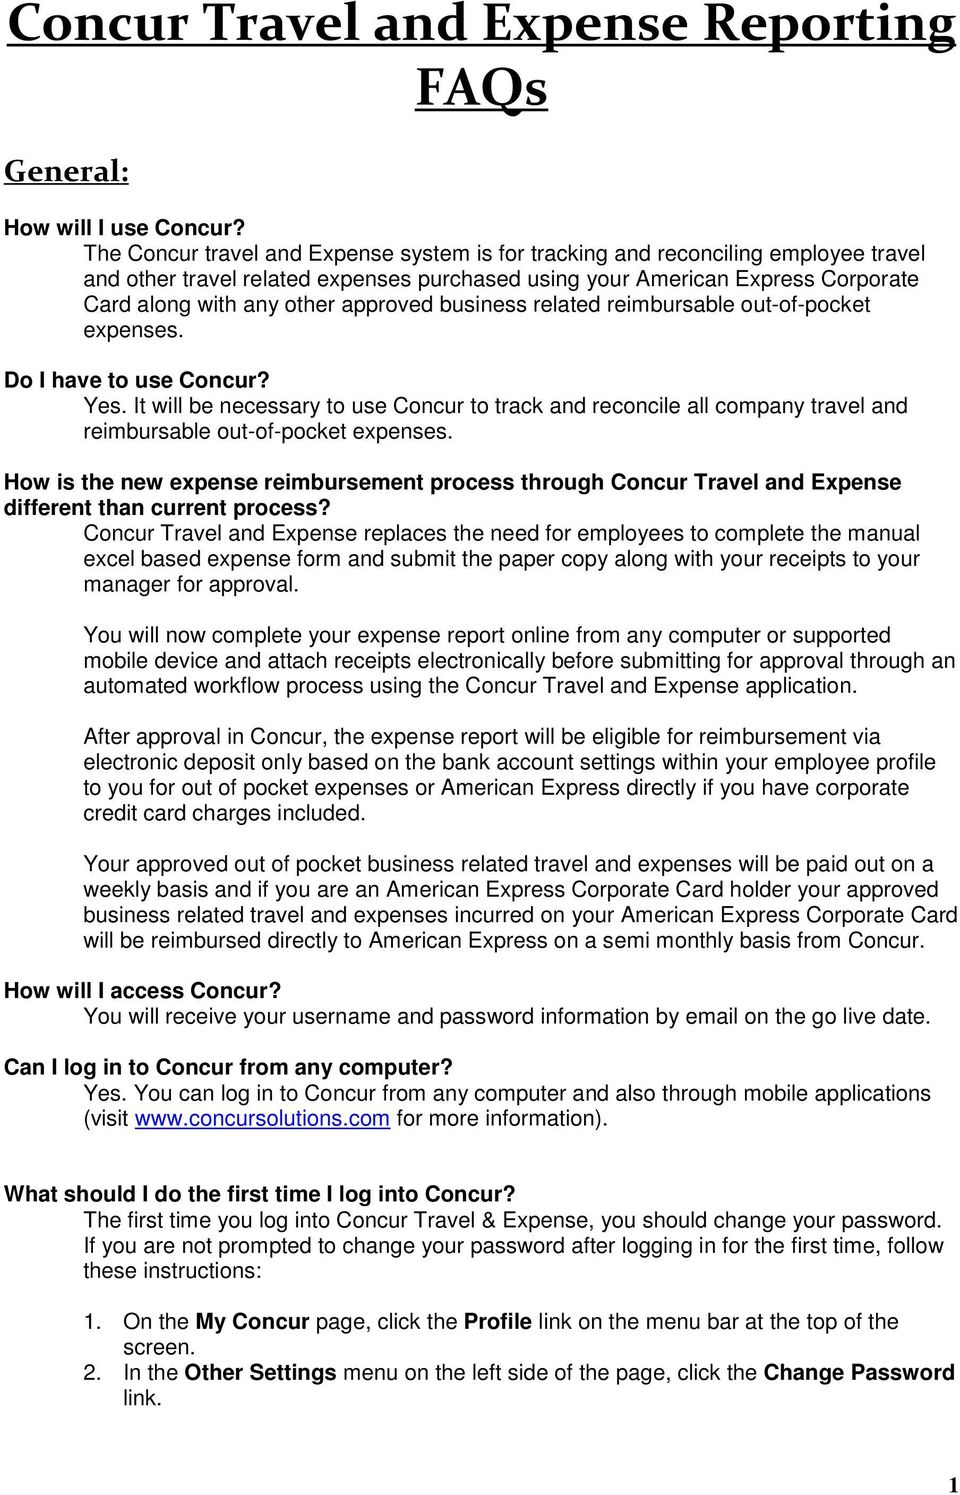 concur travel and expense reporting faqs pdf